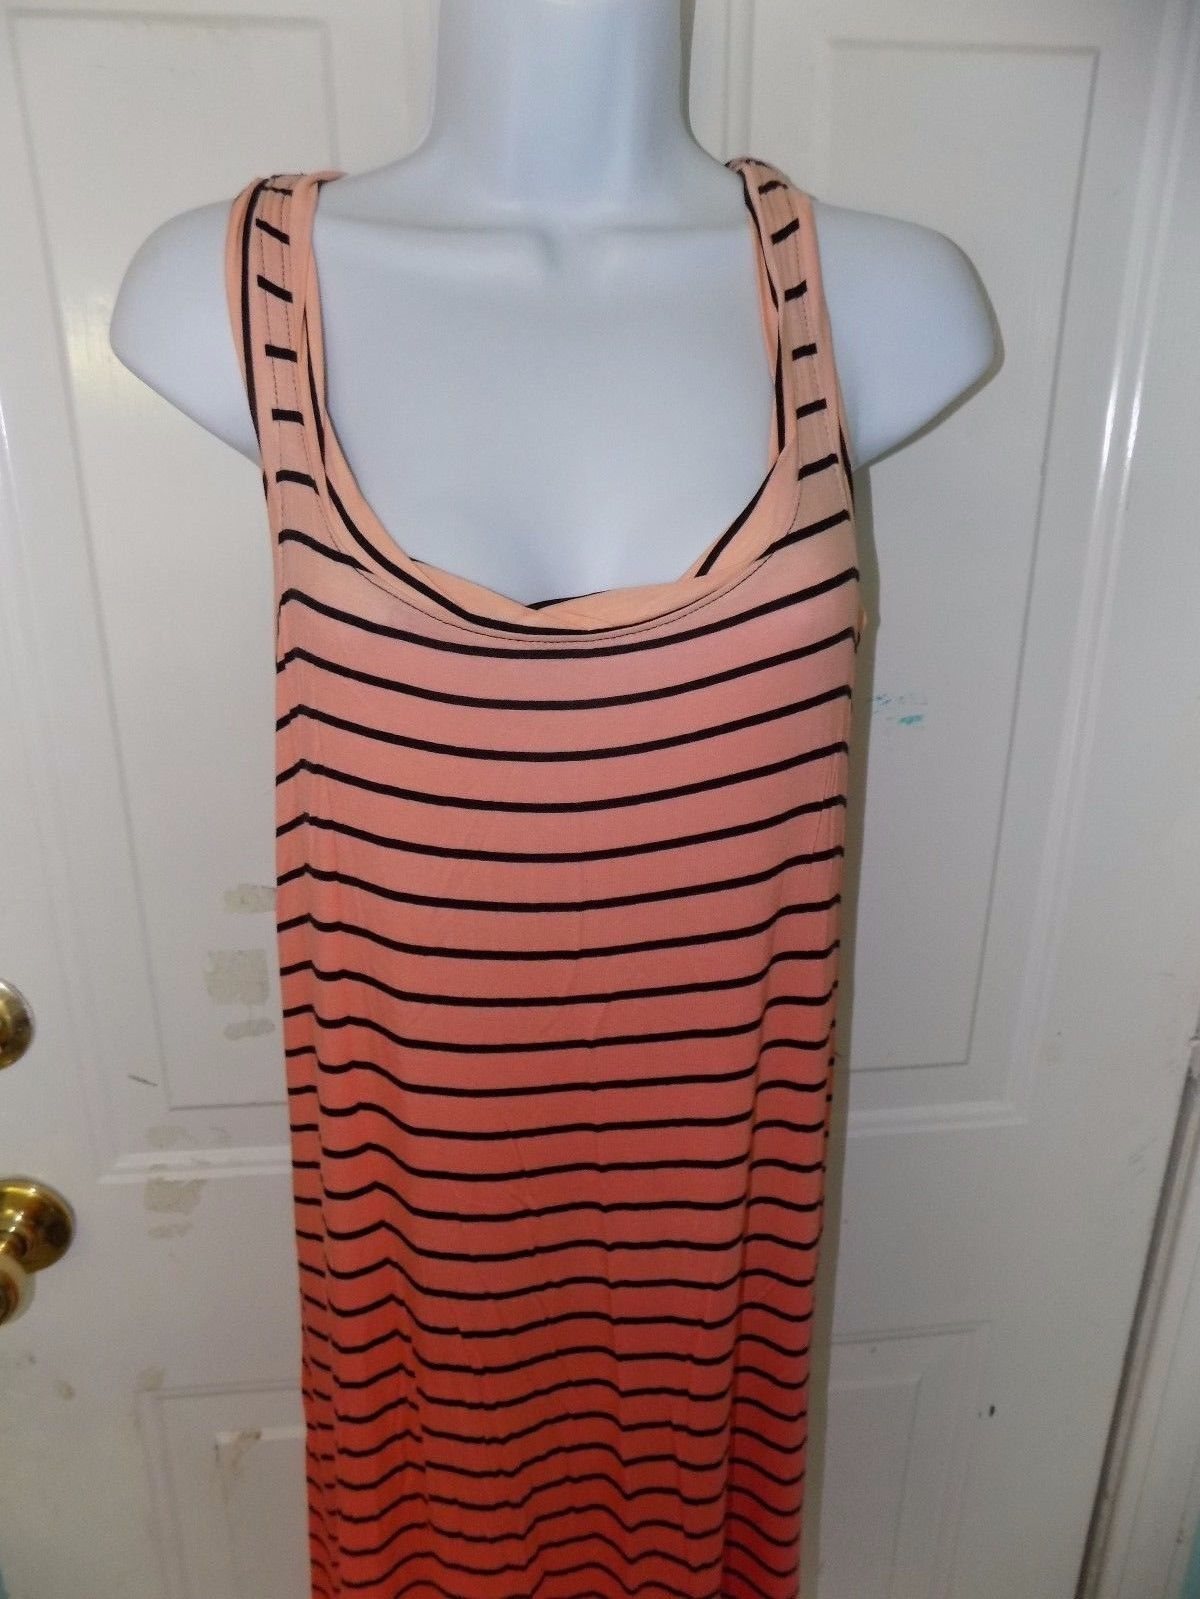 APT.9 PINK/ORANGE STRIPED MAXI DRESS SIZE XS WOMEN'S NWOT